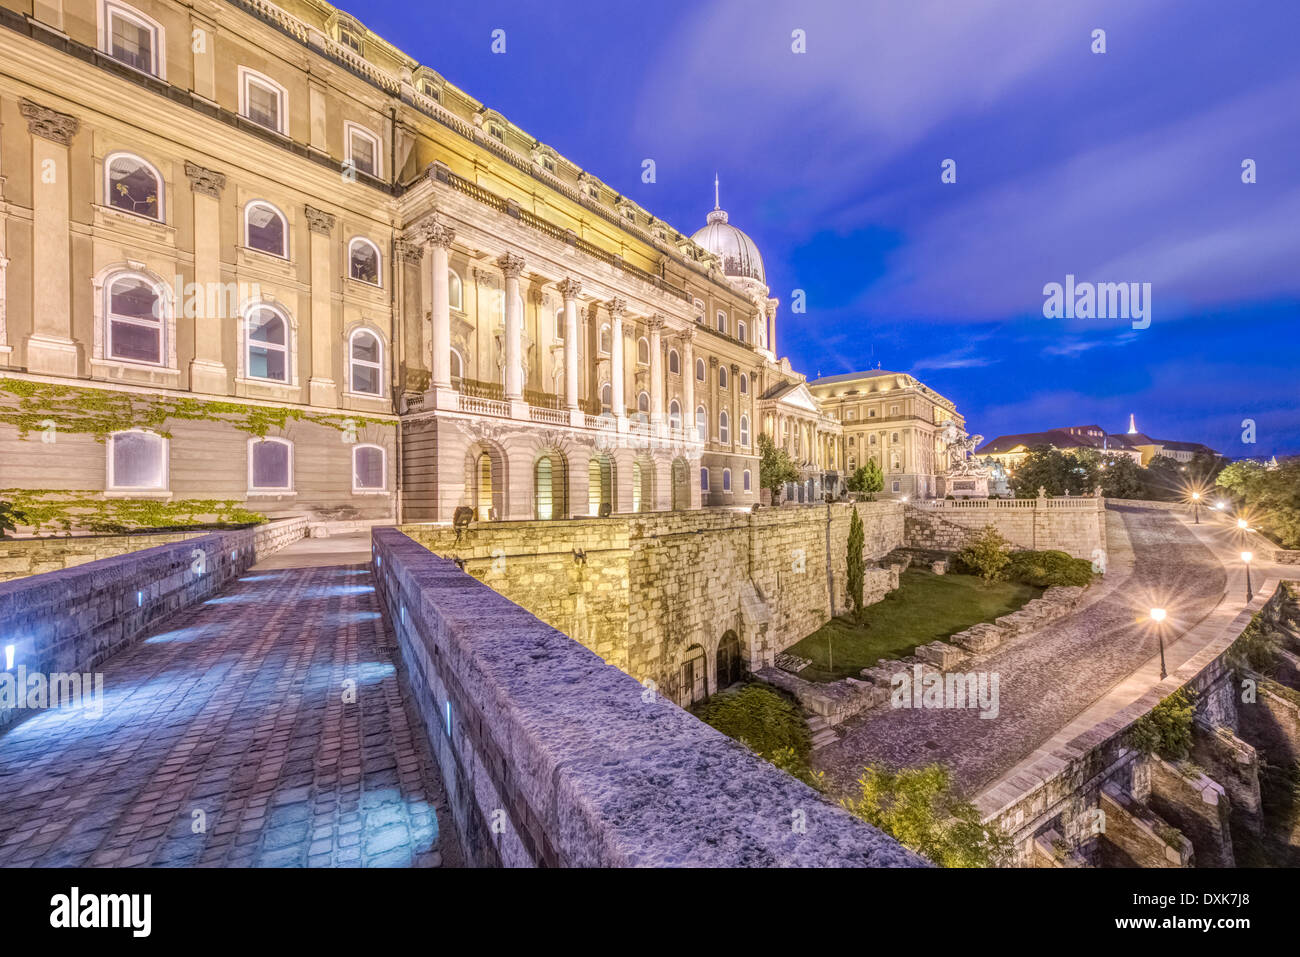 Royal Palace illuminated at dusk, Budapest, Hungary - Stock Image